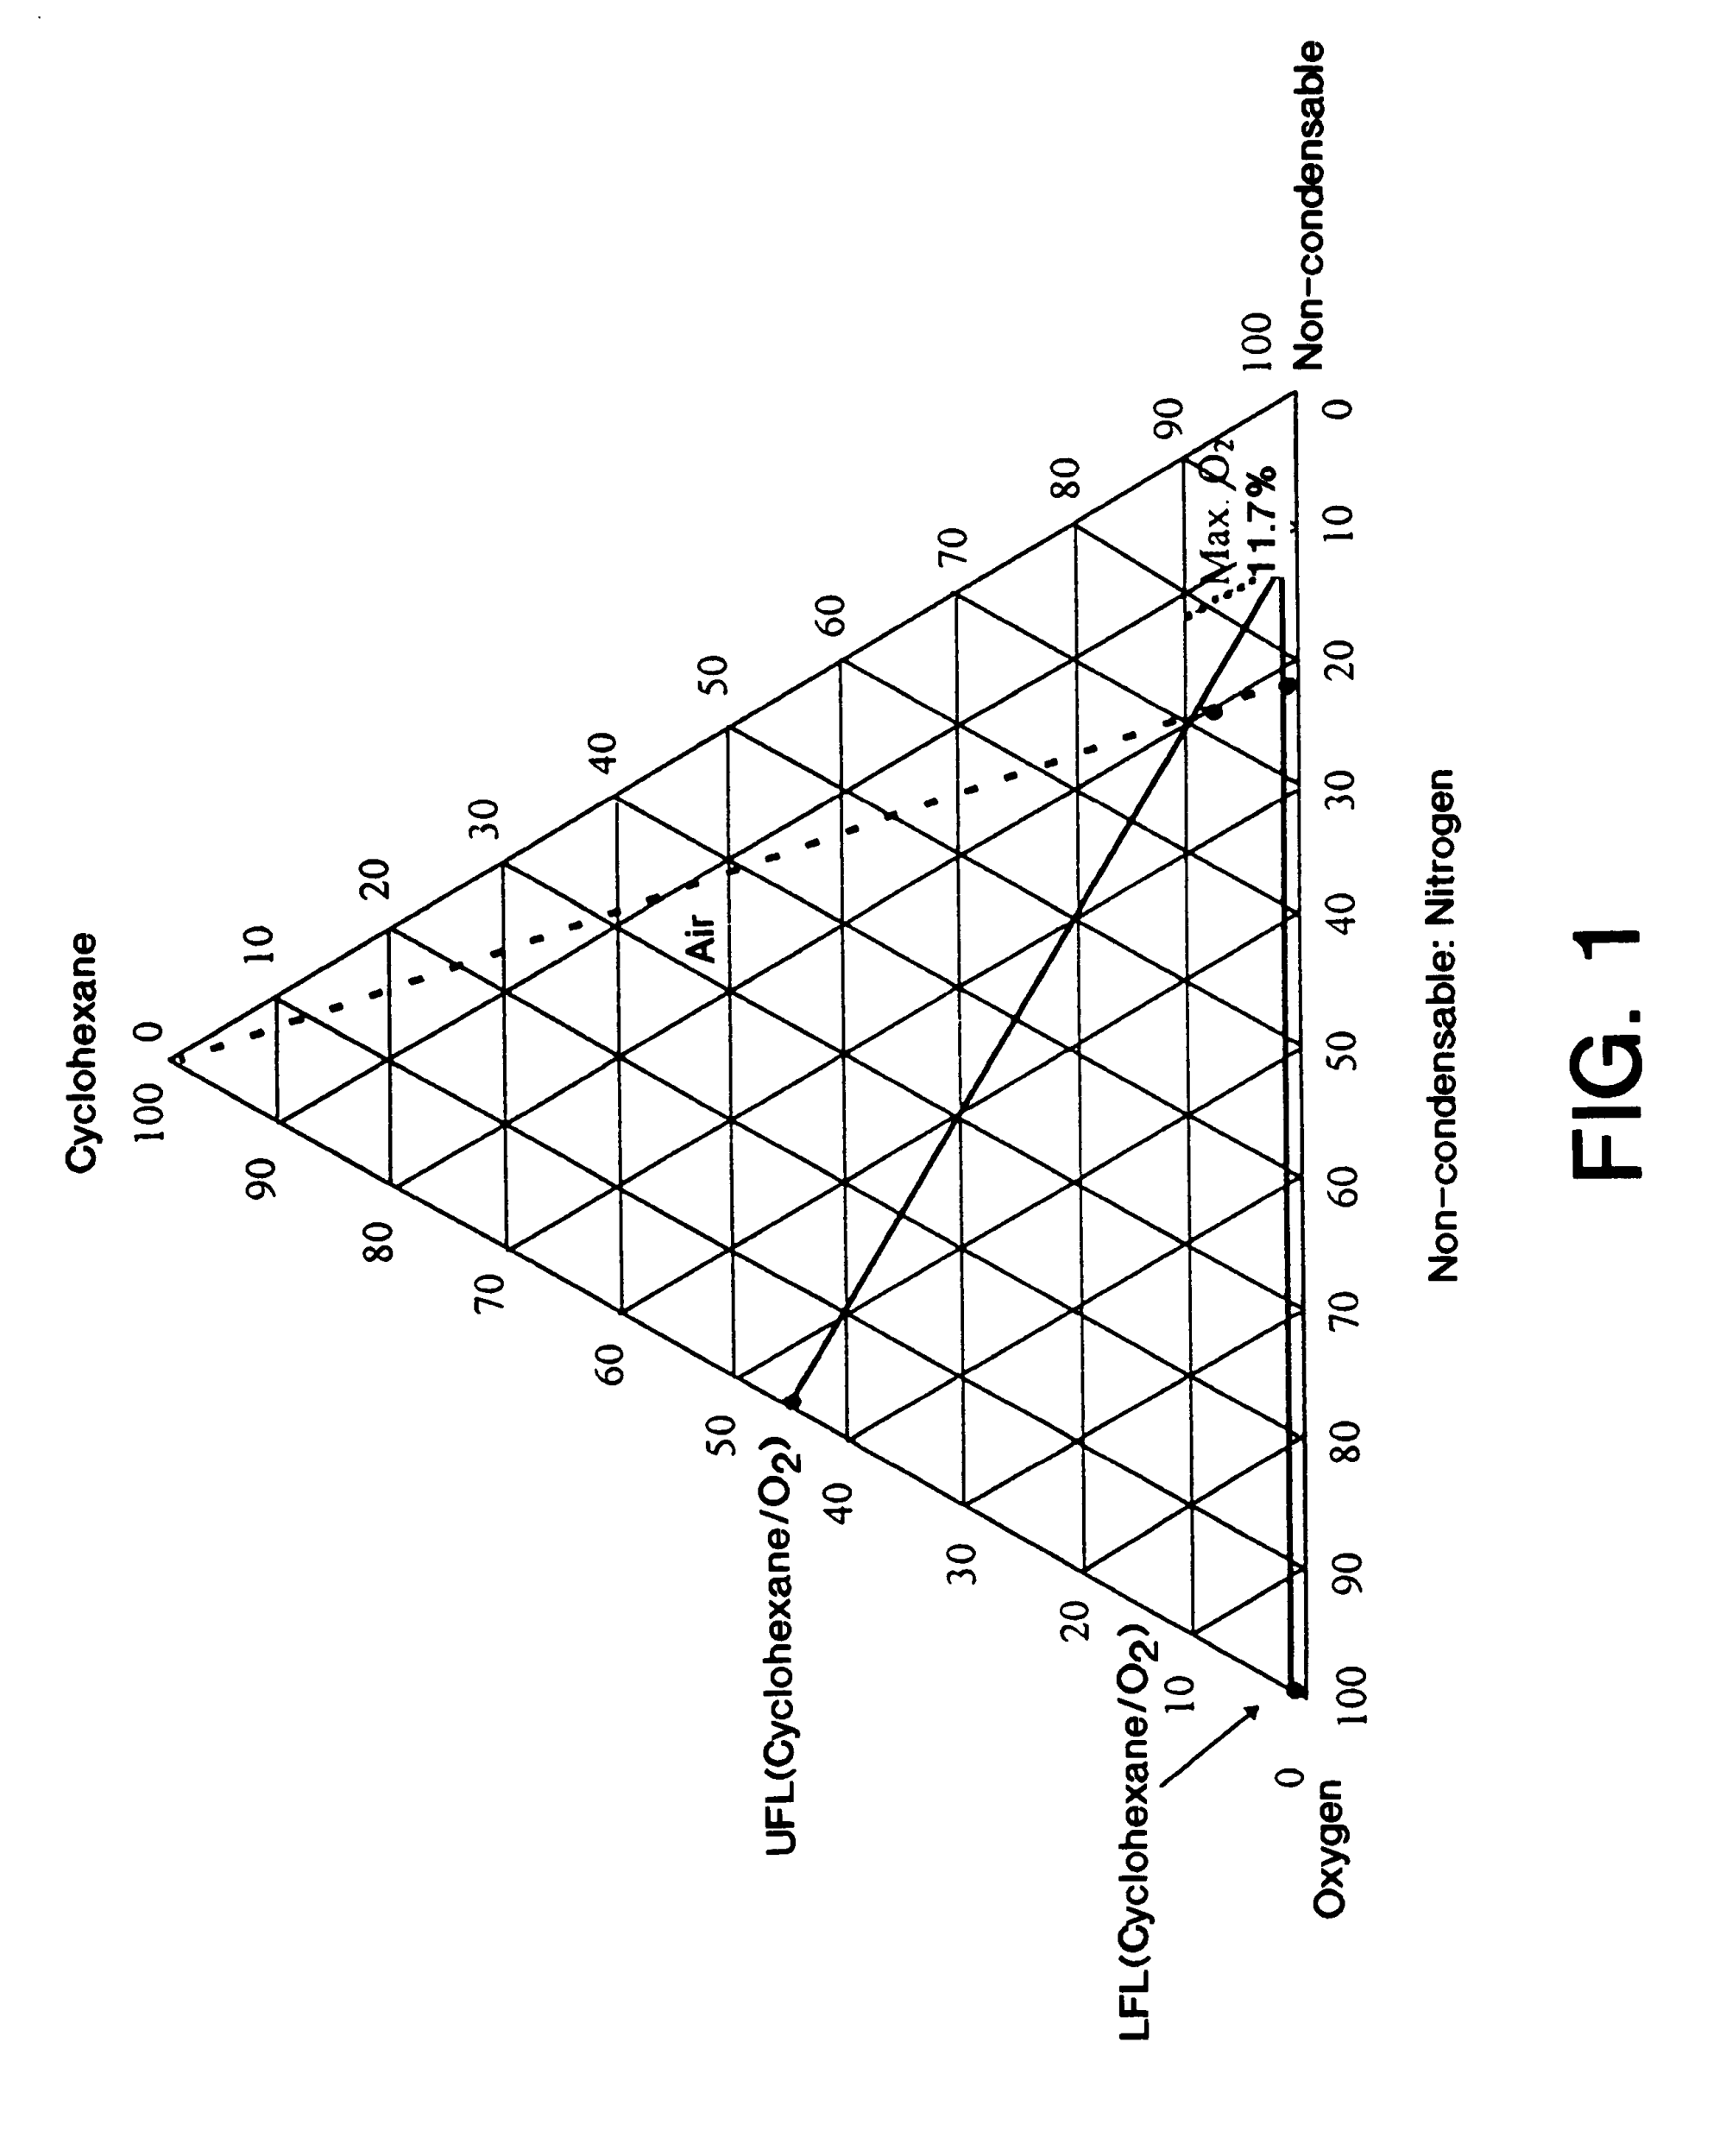 hight resolution of patent us6215027 ballast gas use in liquid phase oxidation methane oxygen nitrogen flammability diagram flammability diagram make up